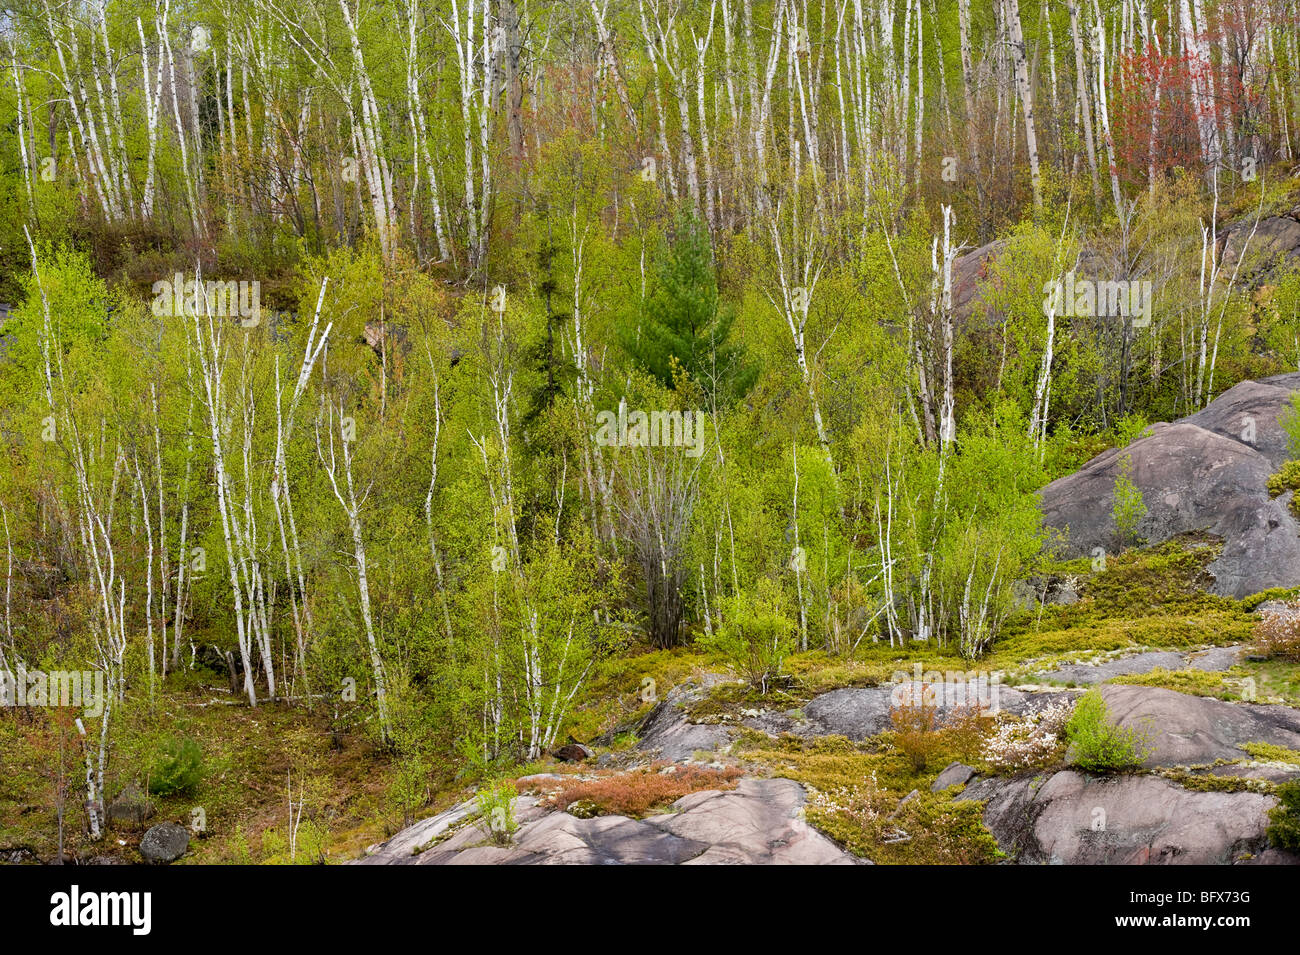 Rocky hillside with aspen trees and flowering serviceberry, Greater Sudbury, Ontario, Canada - Stock Image